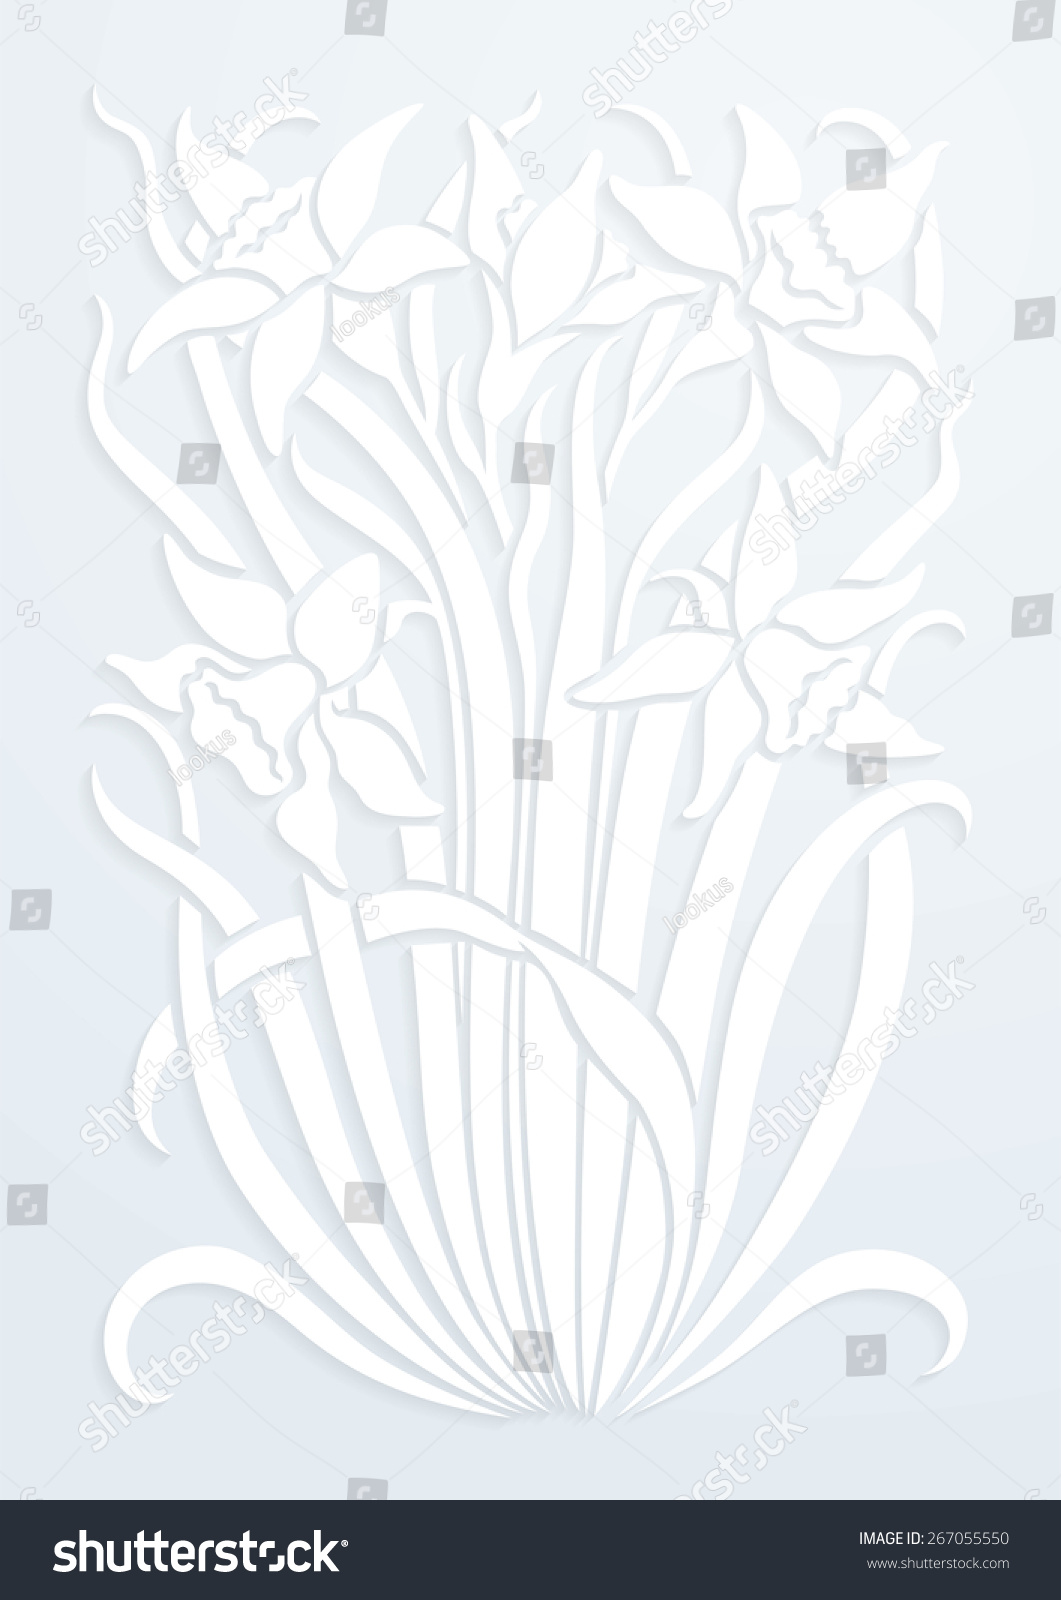 White Paper Floral Ornament Silhouette Flowers Stock Vector Royalty